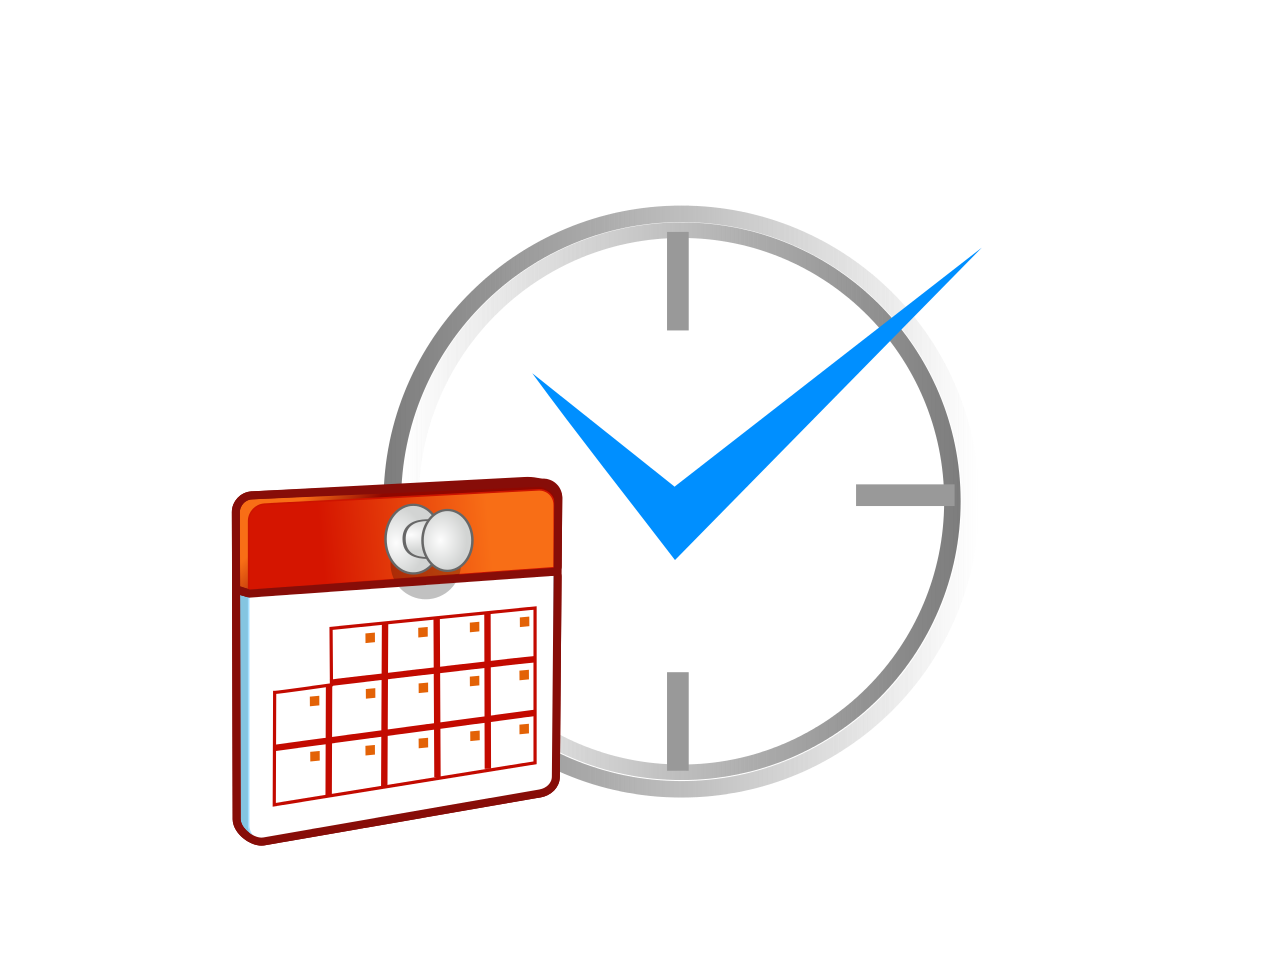 https://upload.wikimedia.org/wikipedia/commons/thumb/c/cb/Schedule_clock.svg/1280px-Schedule_clock.svg.png